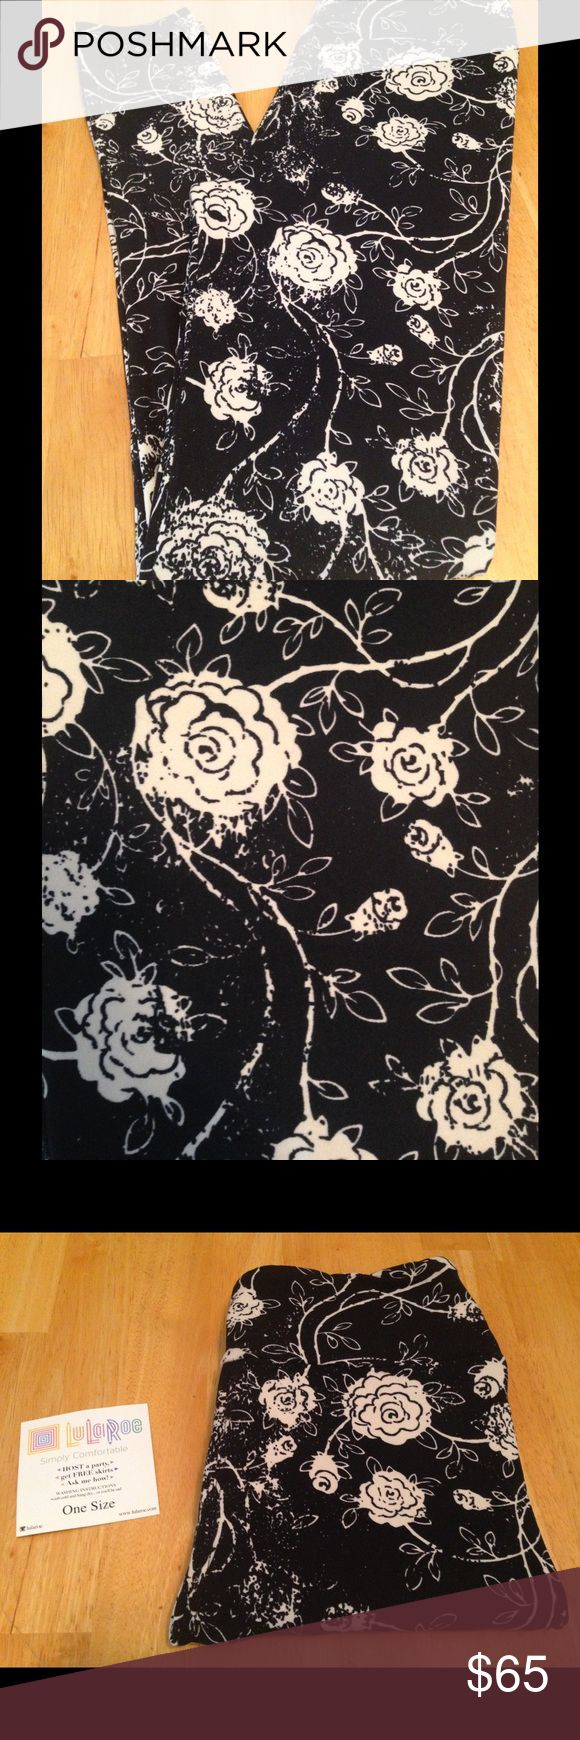 🆕LuLaRoe VHTF Beautiful Roses Leggings NWT Beautiful Off White Roses With A Black Background. Very Hard To Find! New 2017 Print! Thoroughly Inspected For Defects and They Are In Perfect Condition! Never Worn Or Tried On. Made In Vietnam. **Act Fast They Won't Last Long and This Listing Will Only Be Posted For A Limited Time!** LuLaRoe Pants Leggings